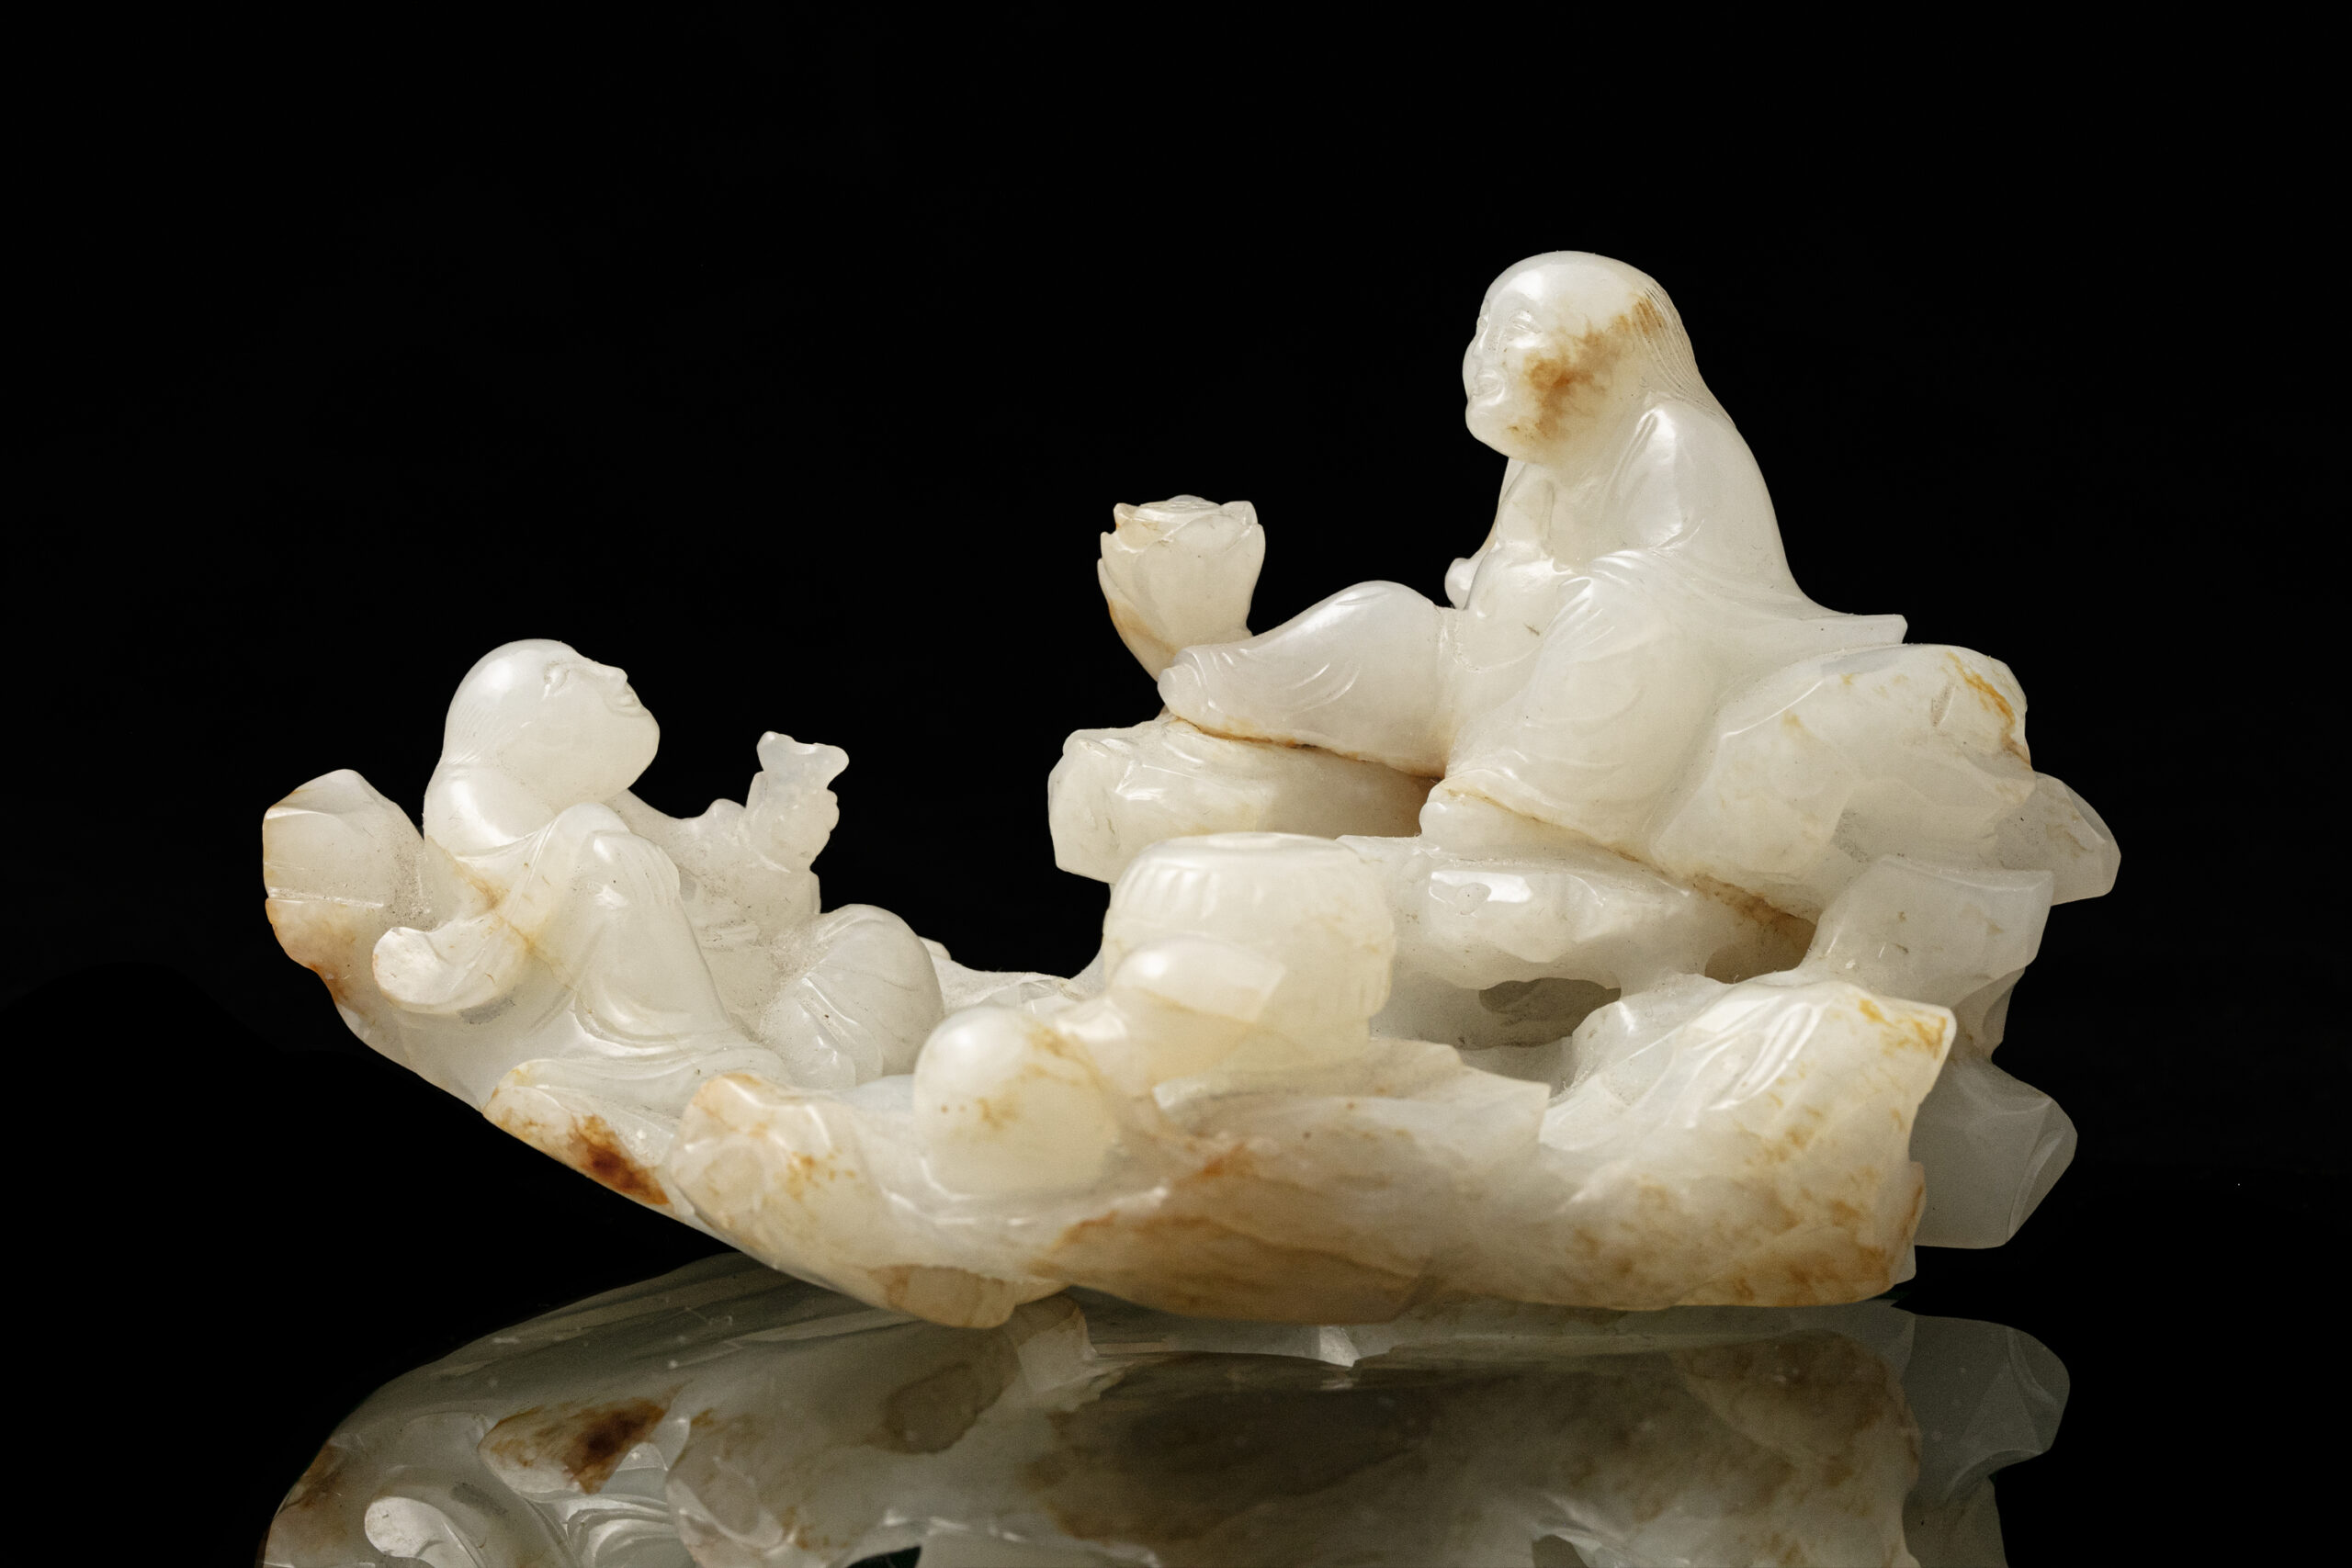 A JADE 'HEHE' GROUP CARVING, CHINA, QING DYNASTY, 19TH C.